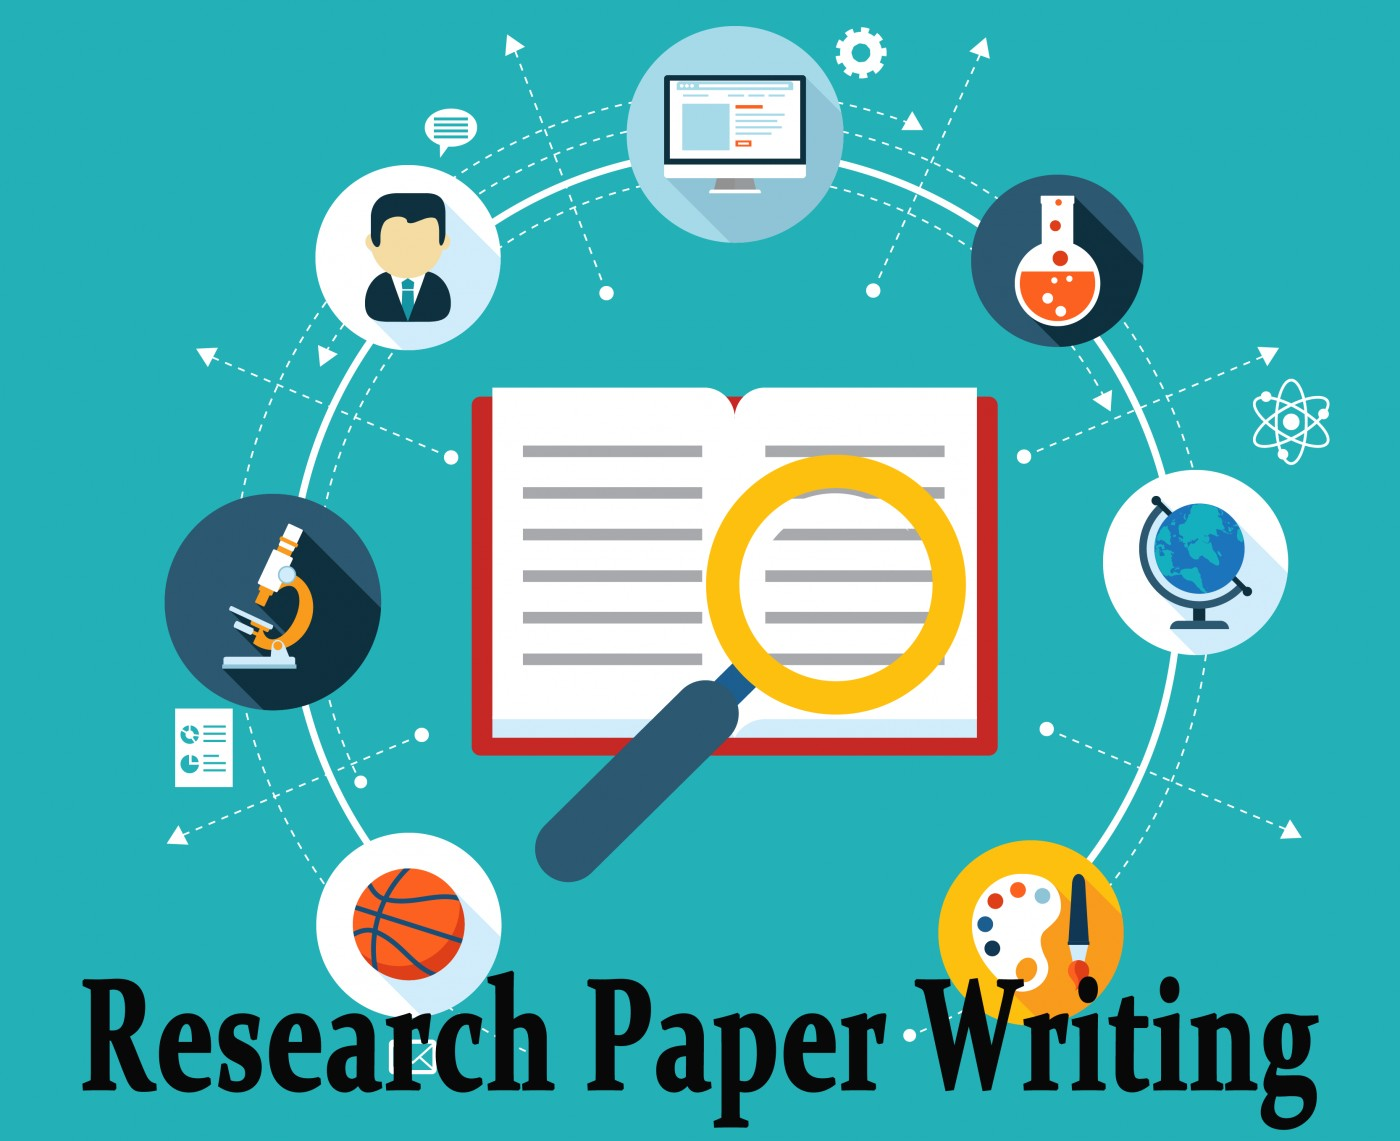 009 Writing The Research Paper 503 Effective Phenomenal Scientific Pdf Abstract Ppt Book 1400